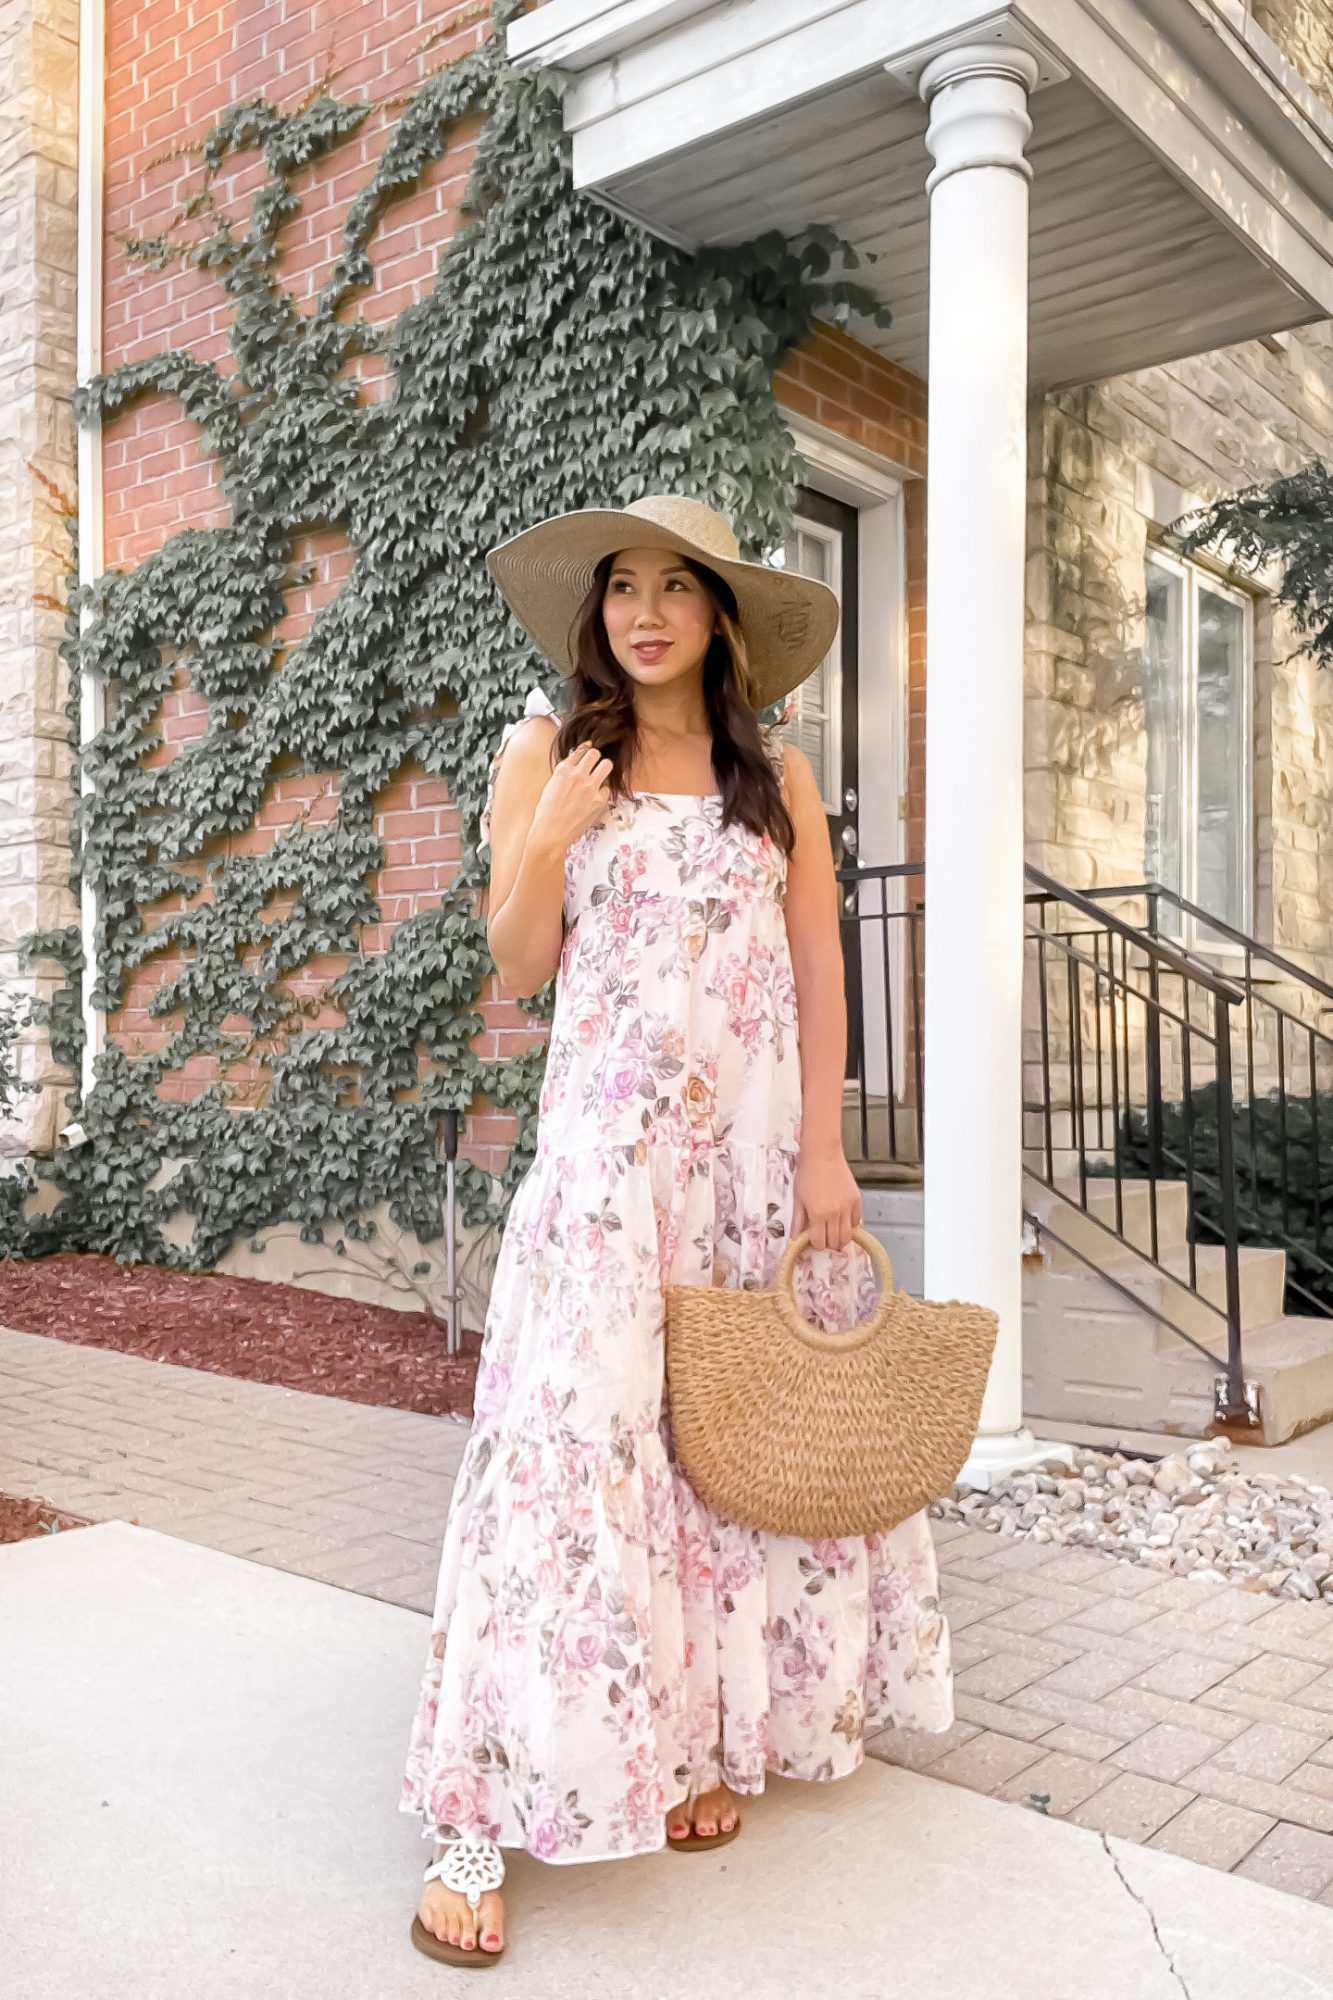 Summer Outfit Ideas - flowy floral maxi dress with sandals and straw hat. Styled by Eileen Lazazzera of yesmissy.com